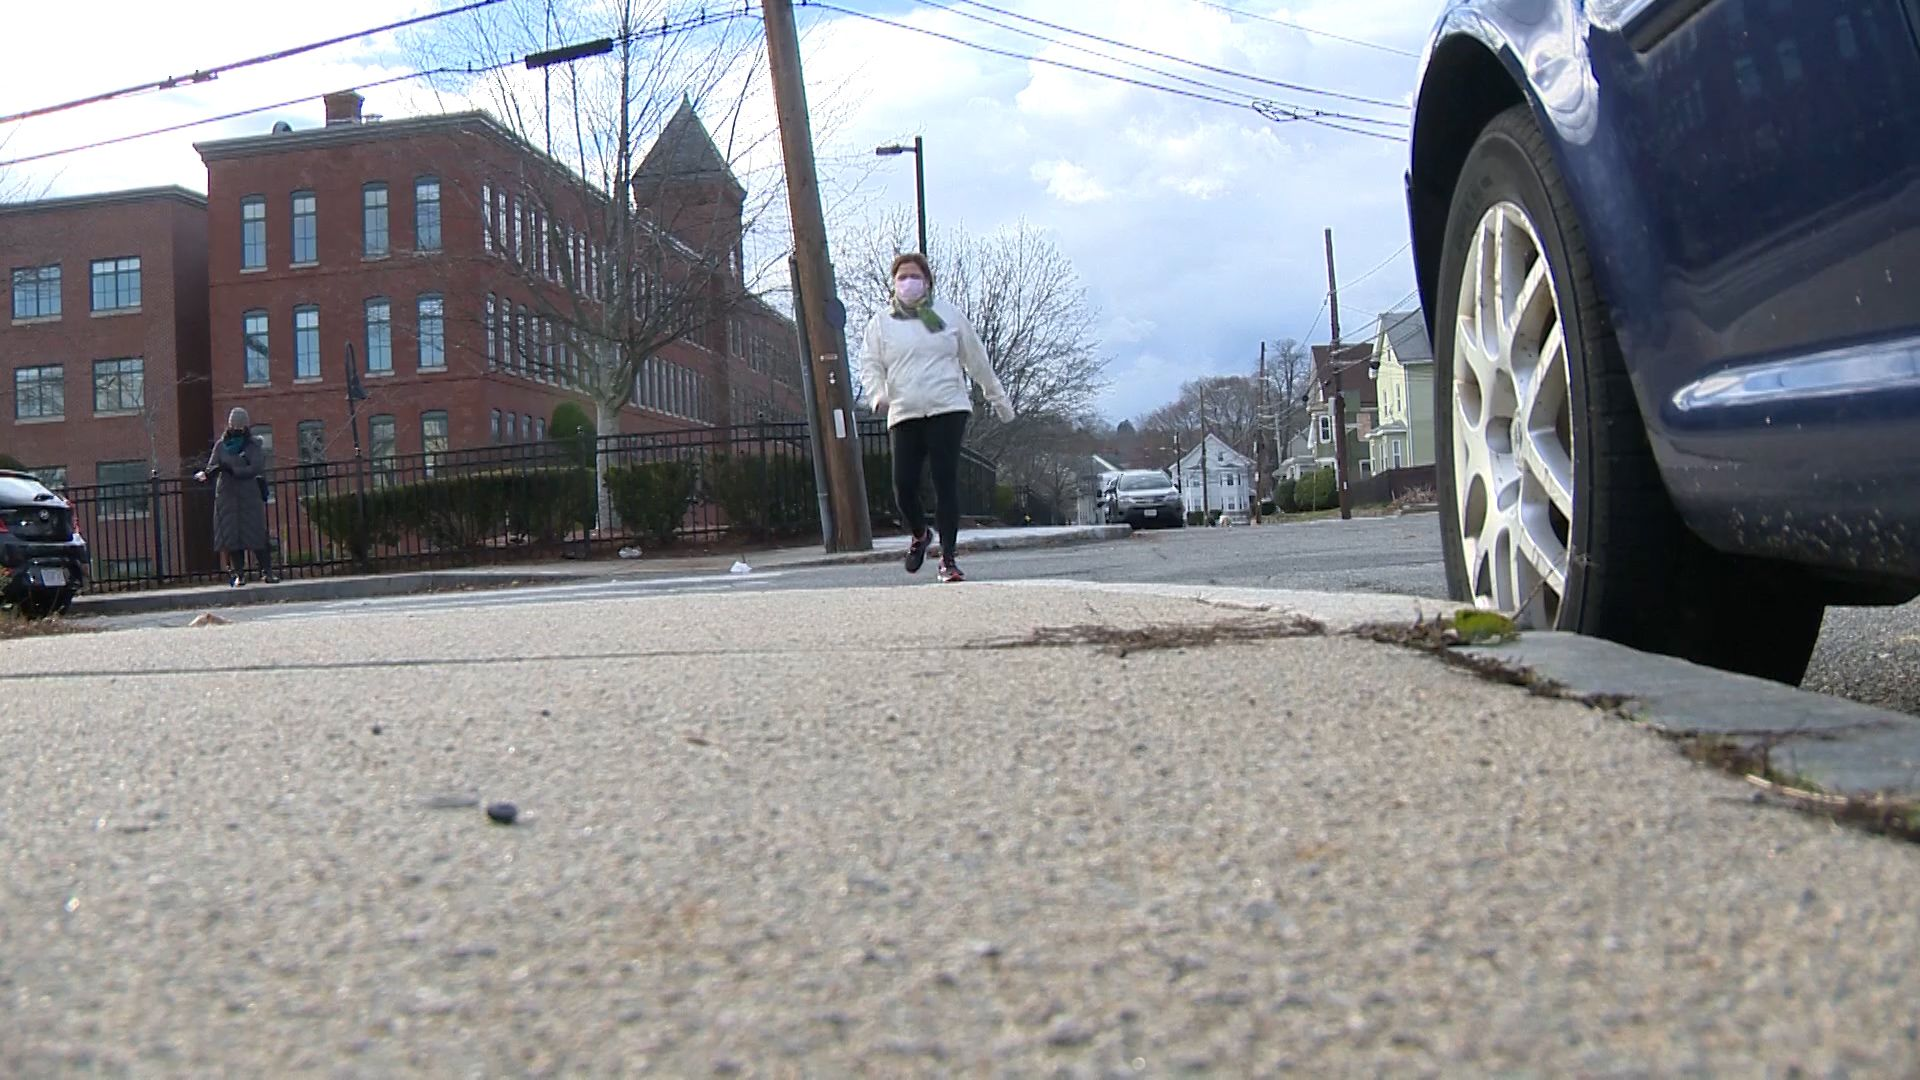 Waltham residents on alert after rash of random attacks in city